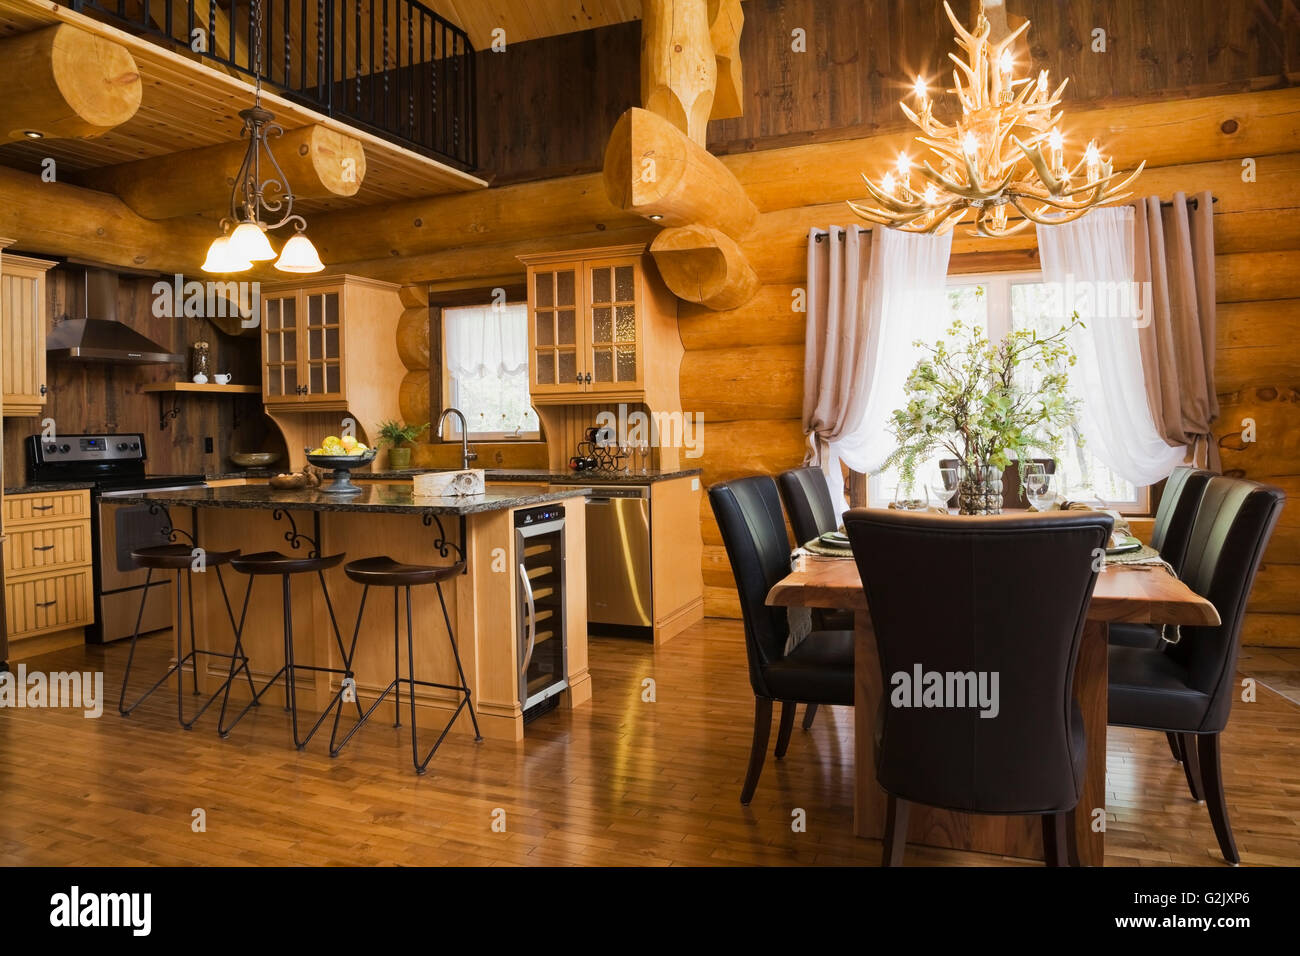 Kitchen Quartz Countertops Island Plus Natural Wood Dining Table Brown Leather Chairs In Room Inside A Luxurious Cottage